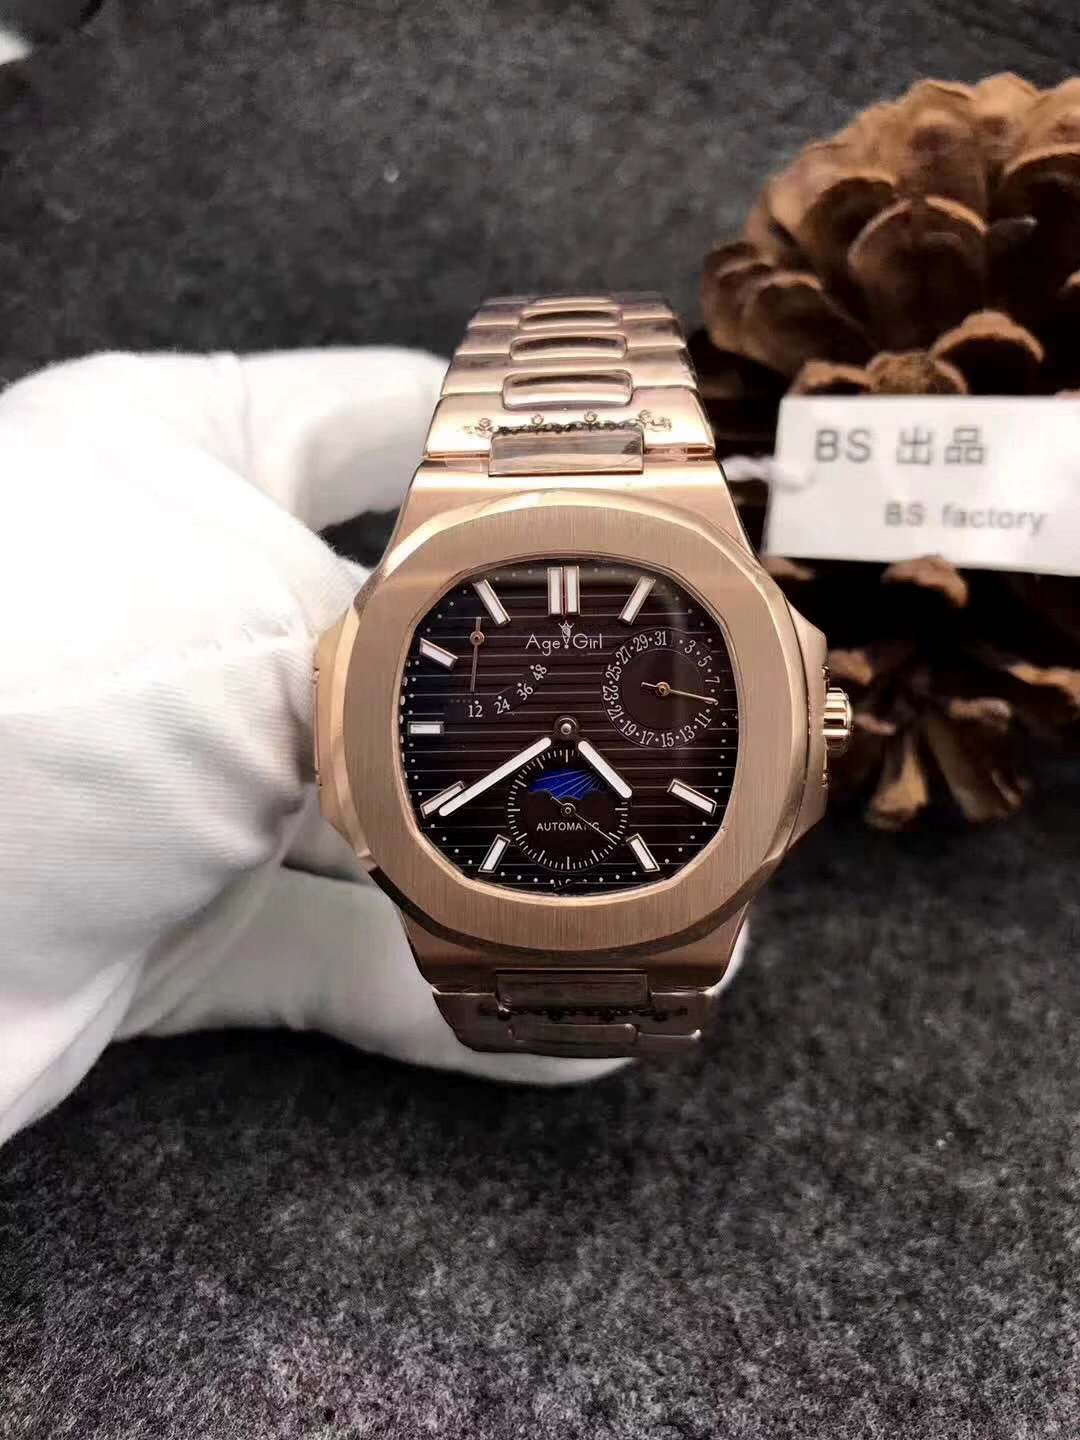 Luxury Brand New Automatic Mechanical Men Watch Sapphire Rose Gold Transparent Glass MoonPhase Watches Black Blue AAA+ MilitaryLuxury Brand New Automatic Mechanical Men Watch Sapphire Rose Gold Transparent Glass MoonPhase Watches Black Blue AAA+ Military